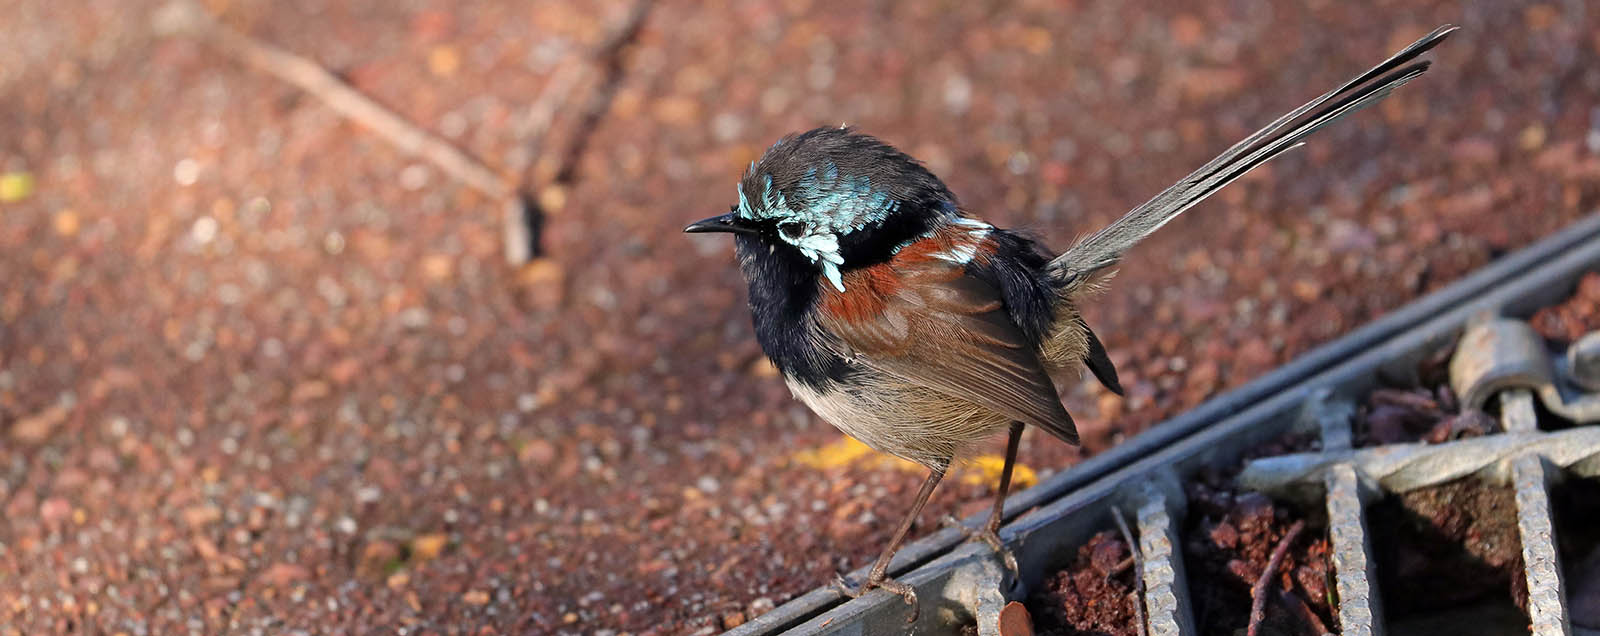 Red-winged Fairy Wren (image by Damon Ramsey)